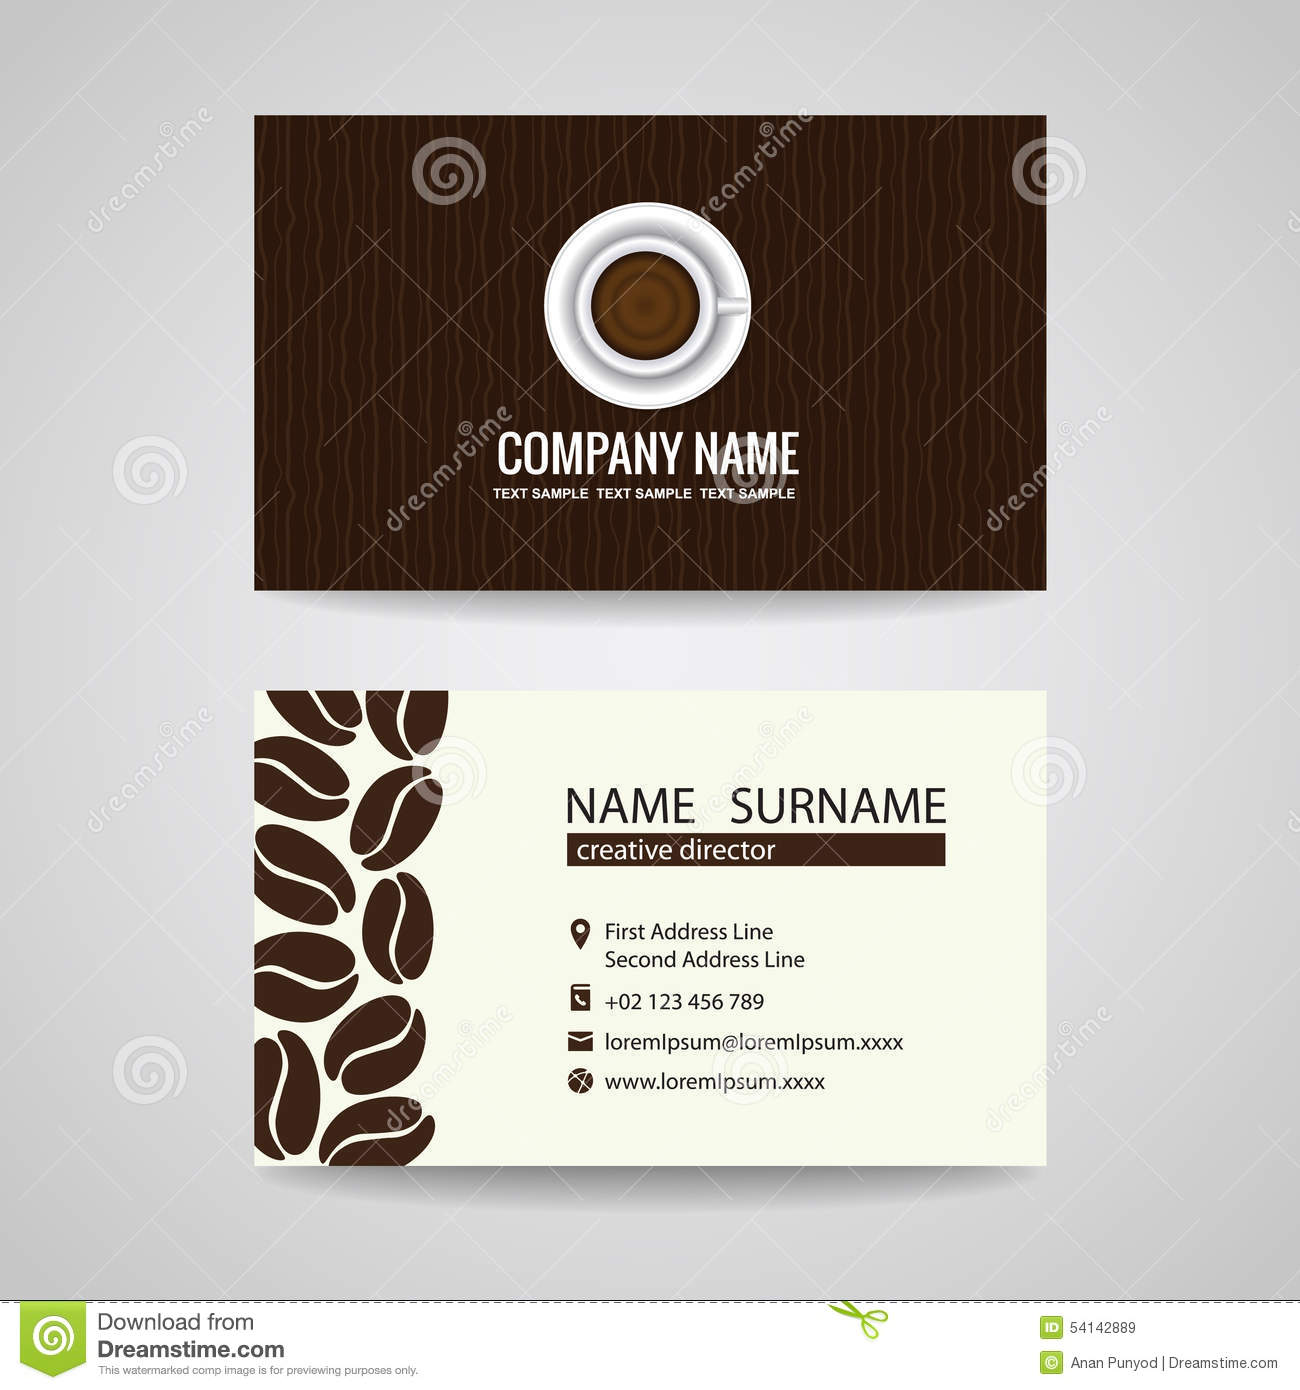 Business card vector graphic design coffee cup and coffee beans business card vector graphic design coffee cup and coffee beans flashek Gallery